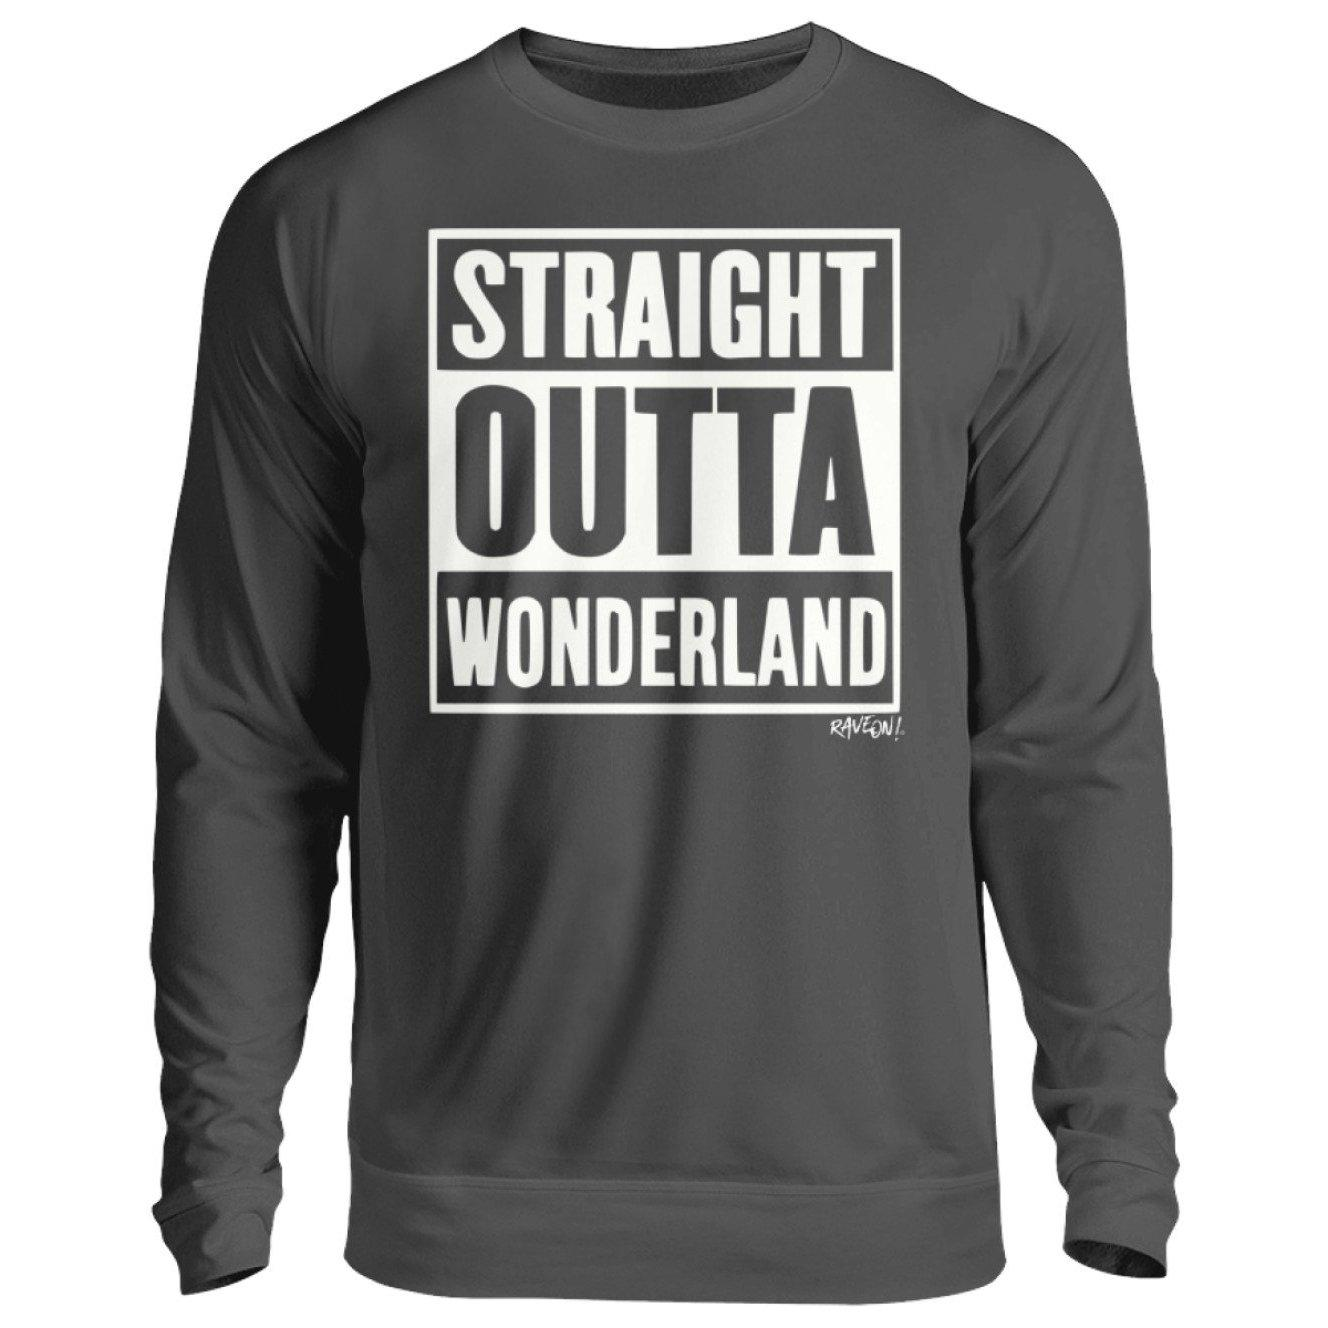 STRAIGHT OUTTA WONDERLAND black - Rave On!® - Unisex Pullover Unisex Sweatshirt Storm Grey (Solid) / S - Rave On!® der Club & Techno Szene Shop für Coole Junge Mode Streetwear Style & Fashion Outfits + Sexy Festival 420 Stuff